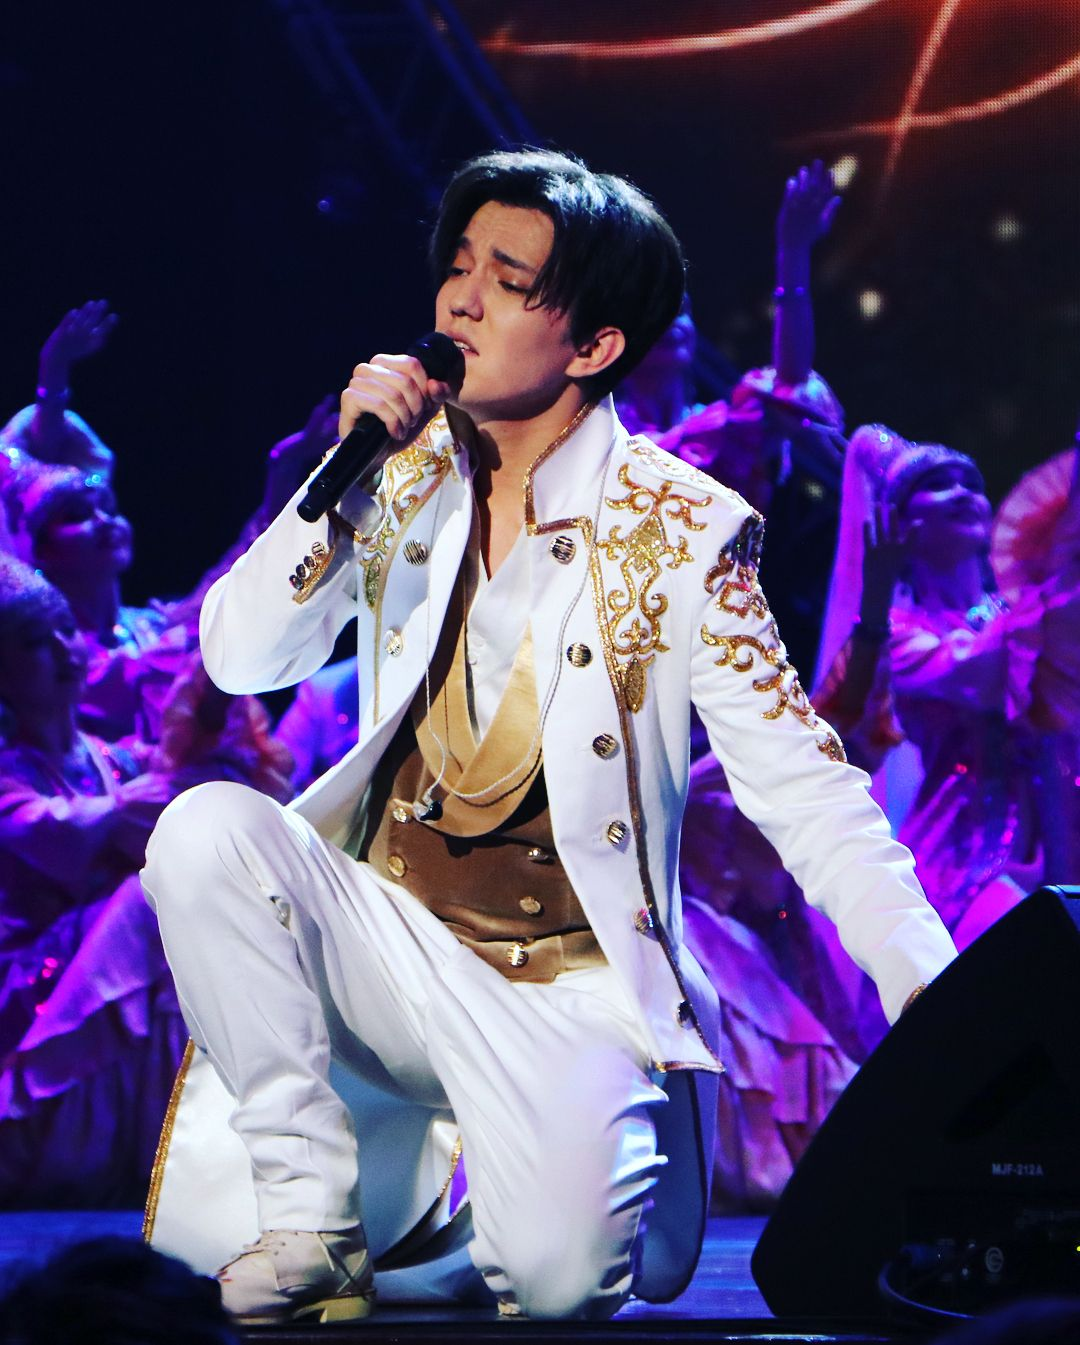 Pin by scarsonland on Dimash Kudaibergen in 2019 | Concert, Opera